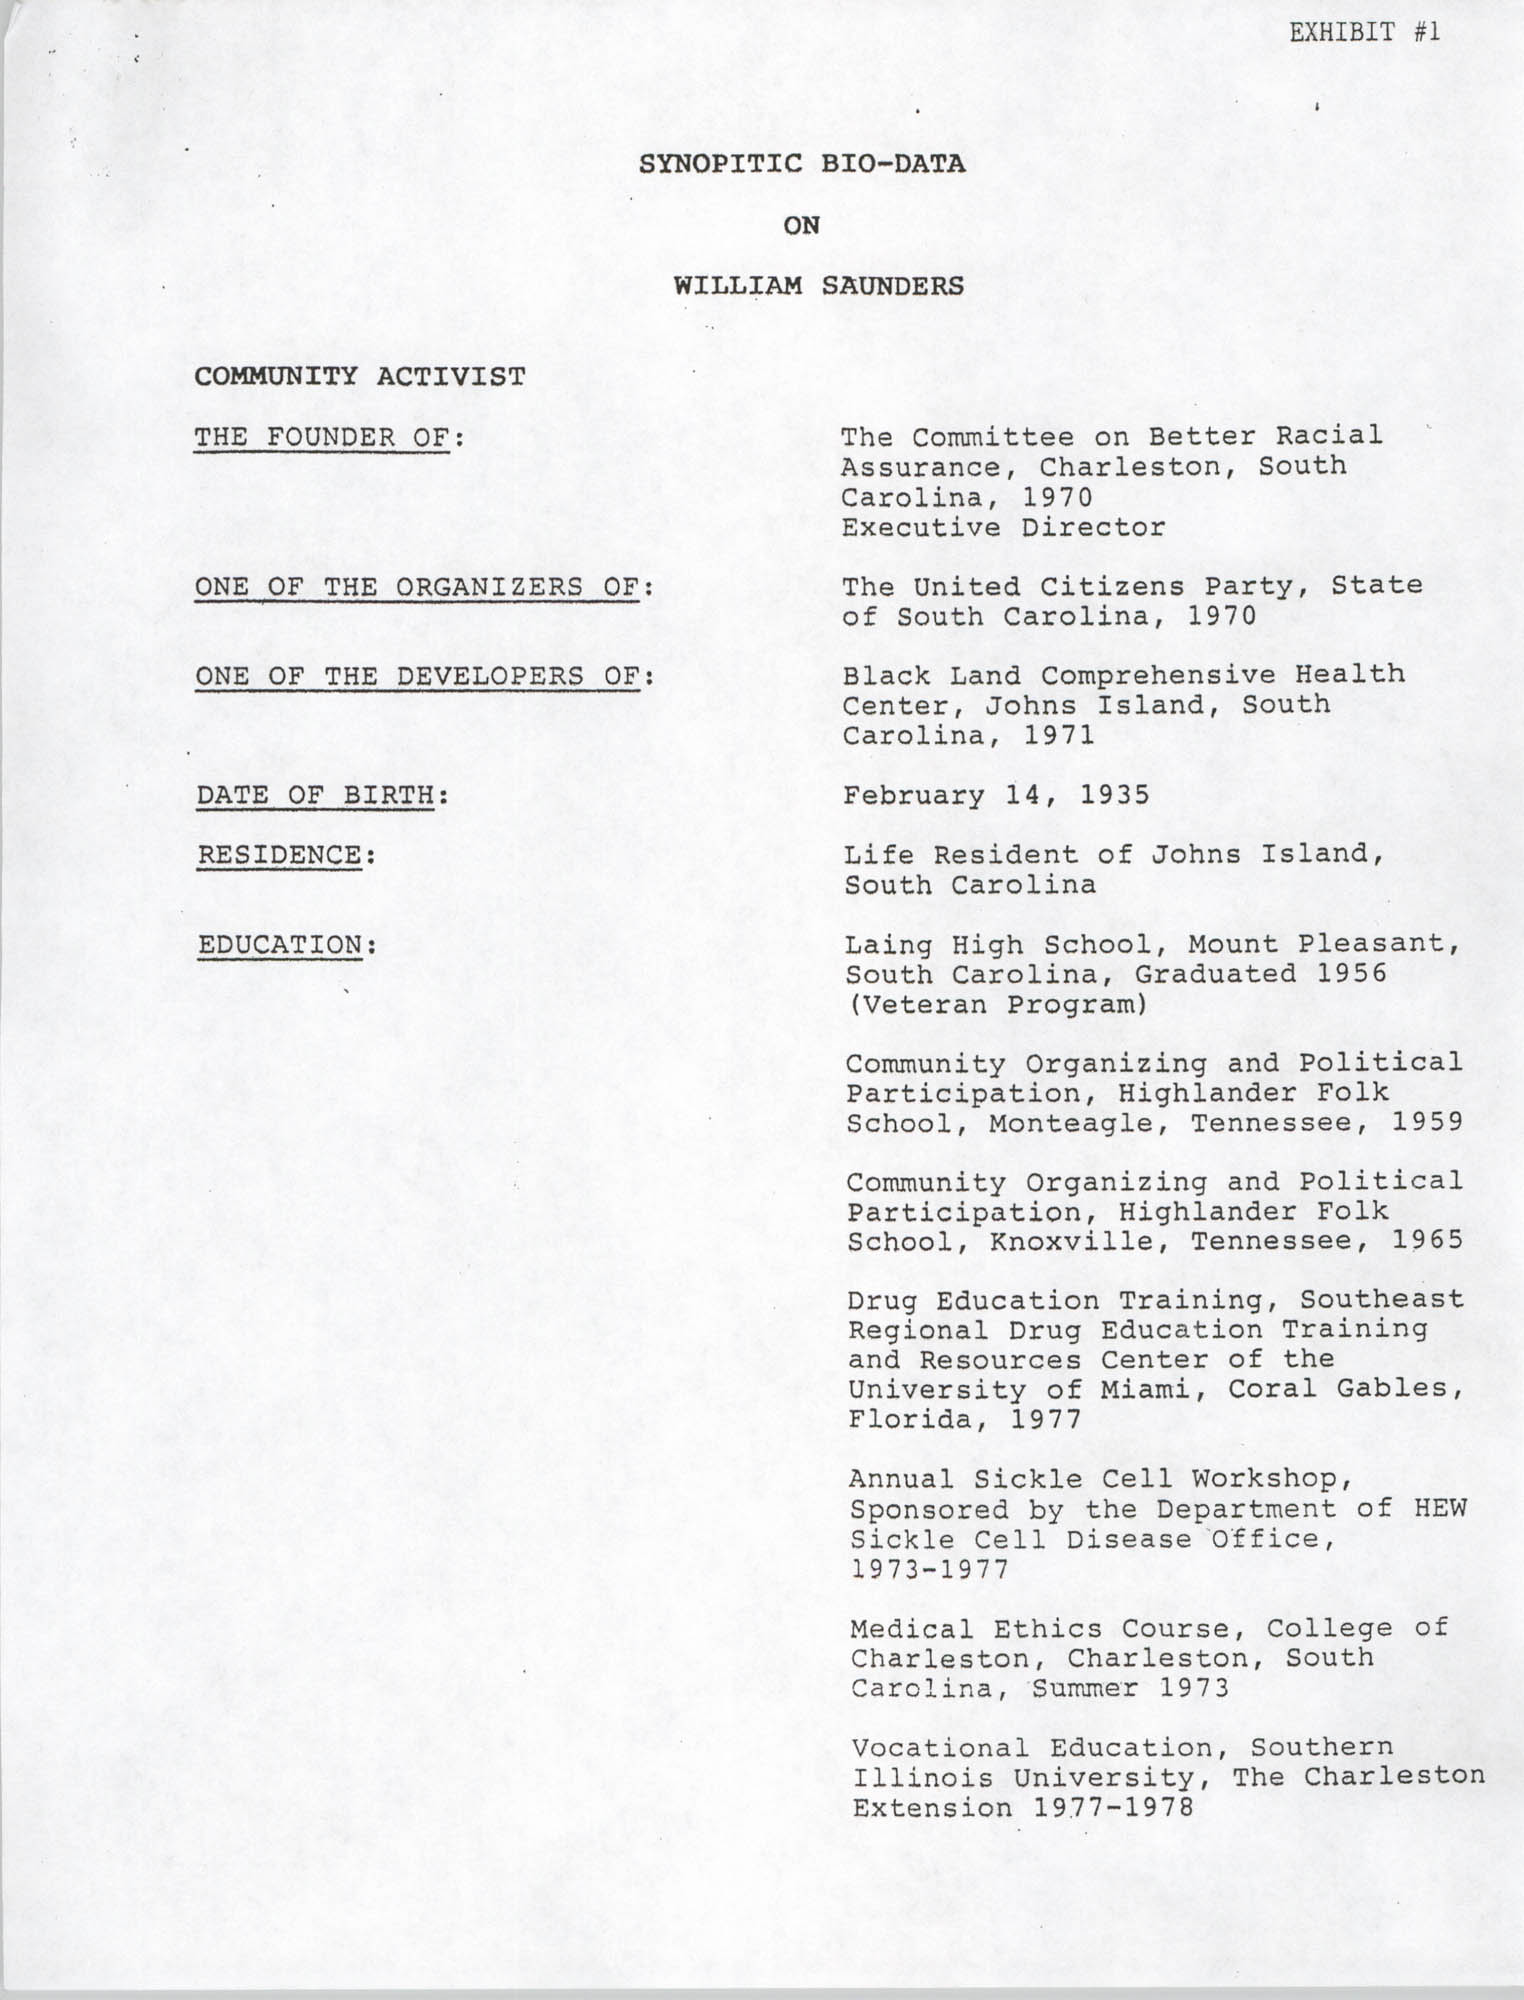 Synopitic Bio-Data on William Saunders, Page 1